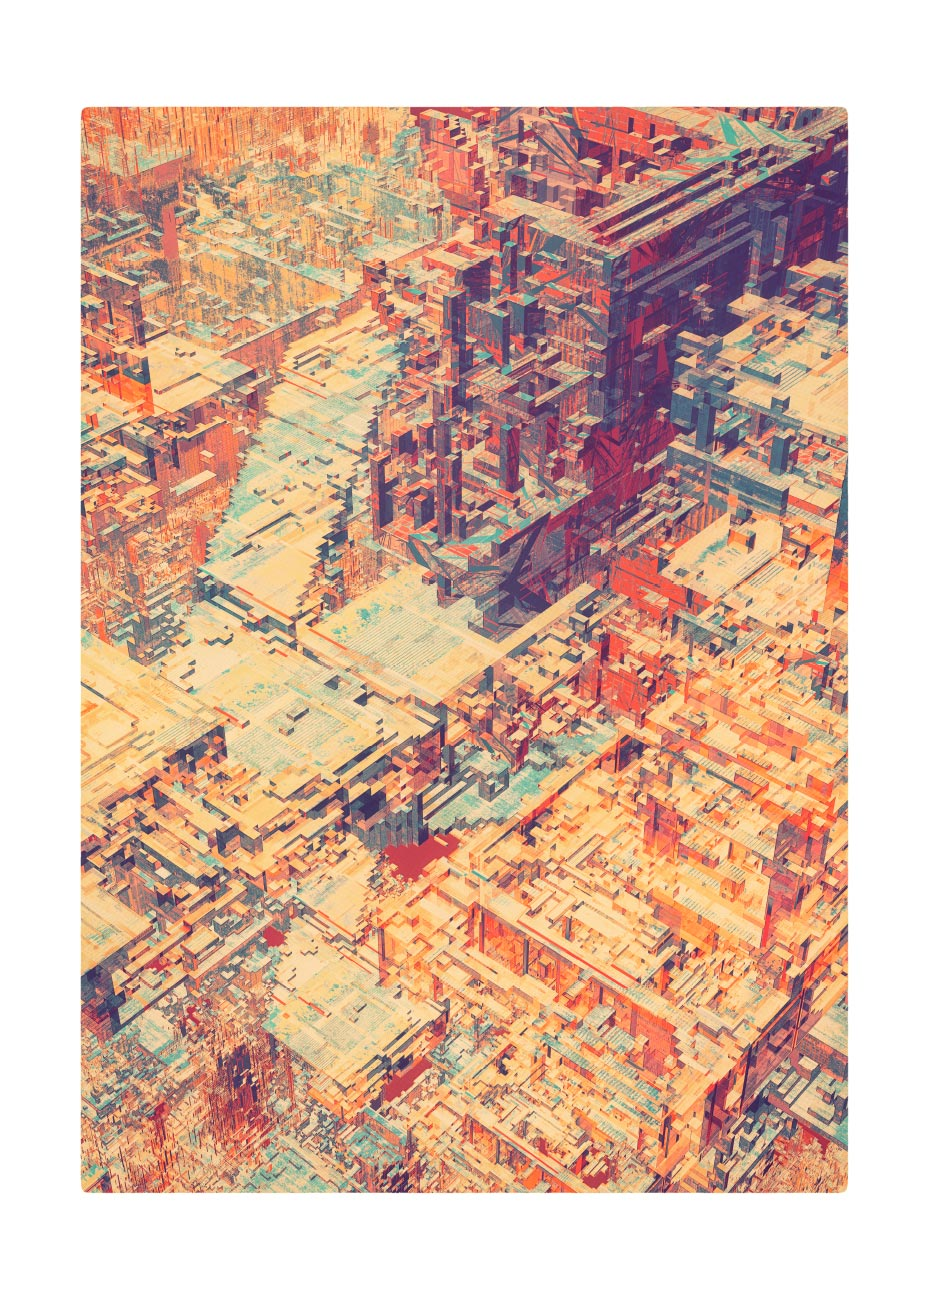 PIXEL CITY II 03